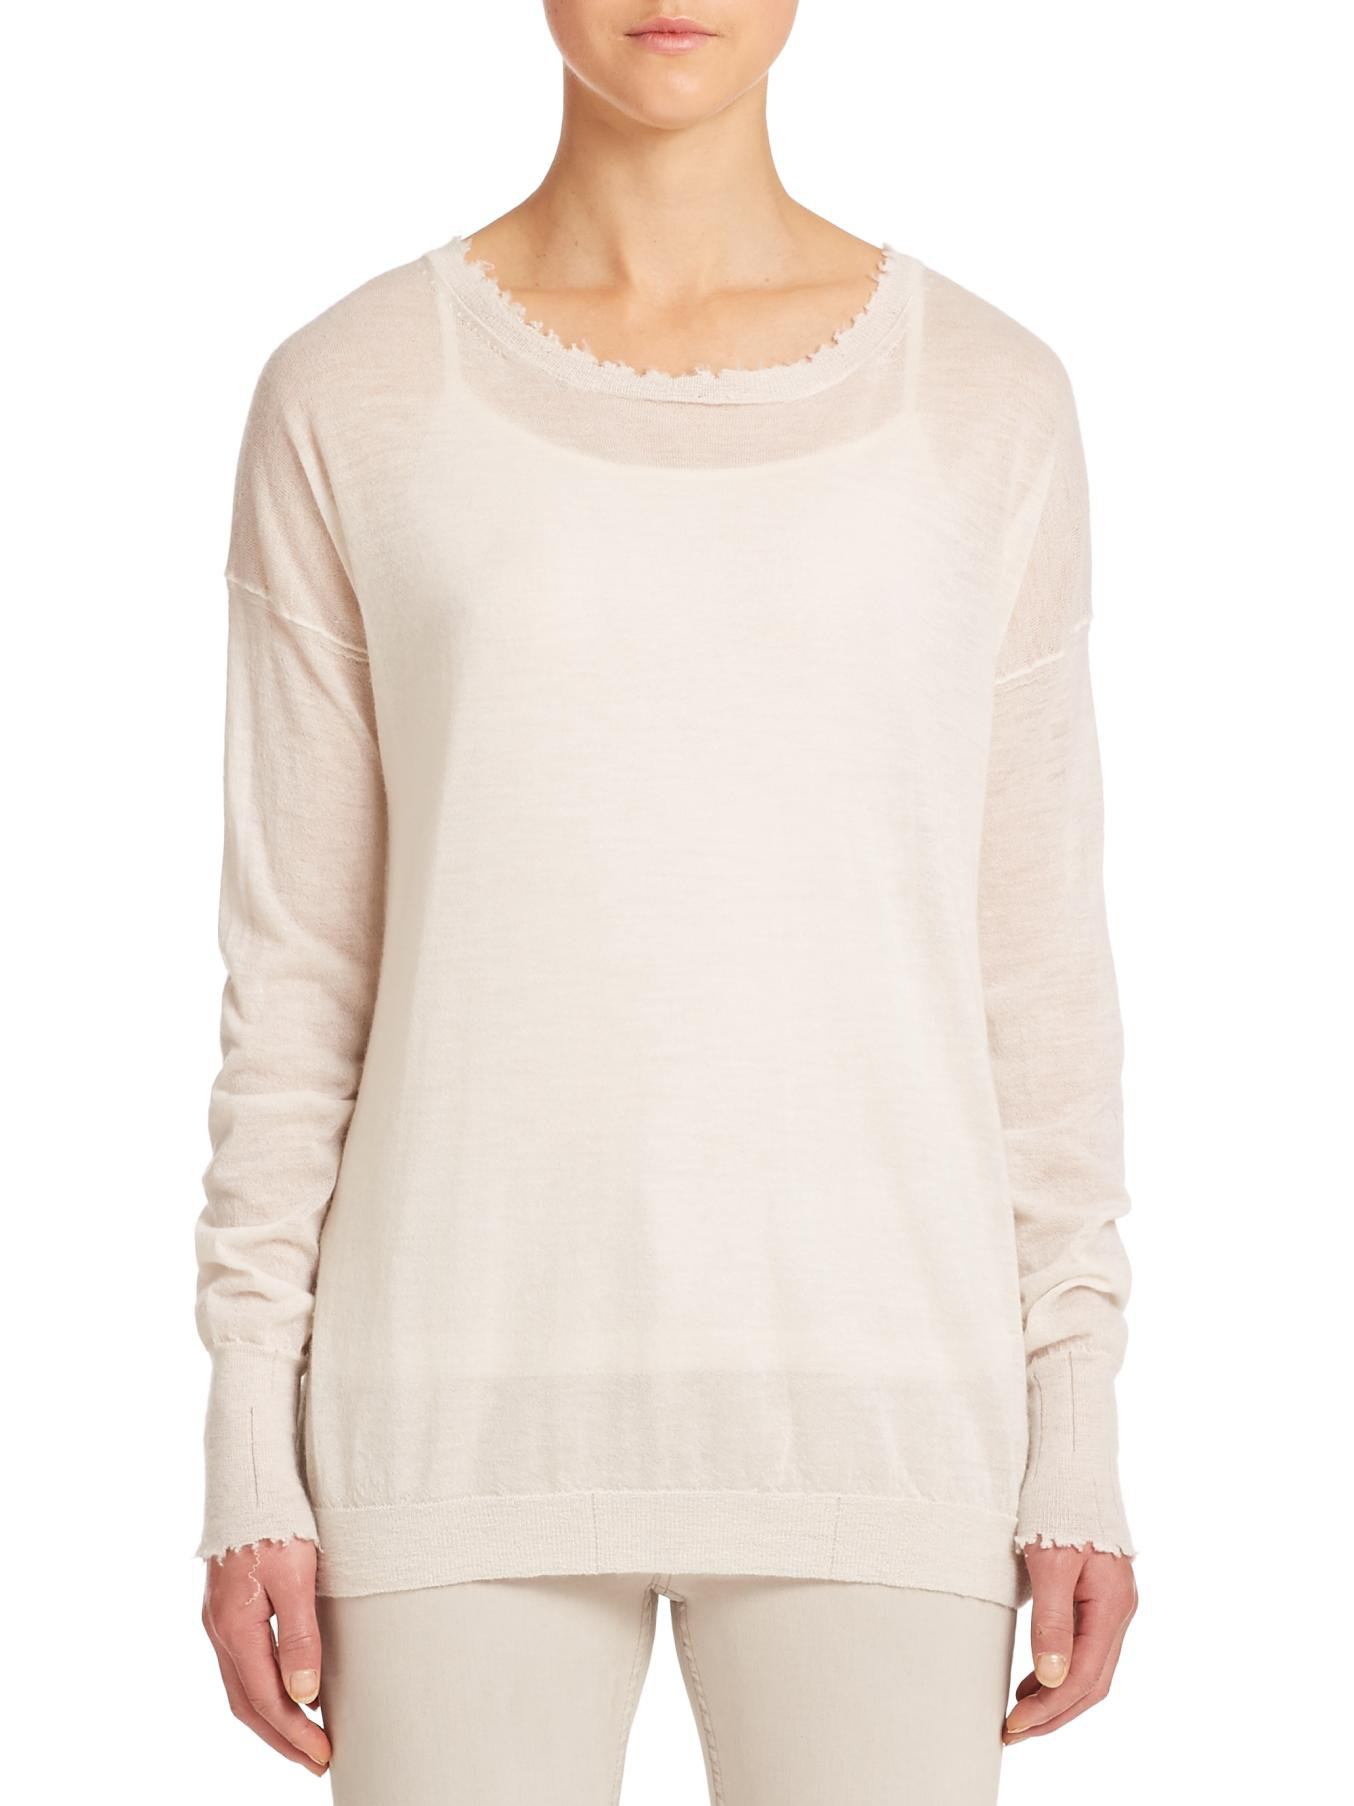 Helmut lang Fine-gauge Cashmere Sweater in White | Lyst